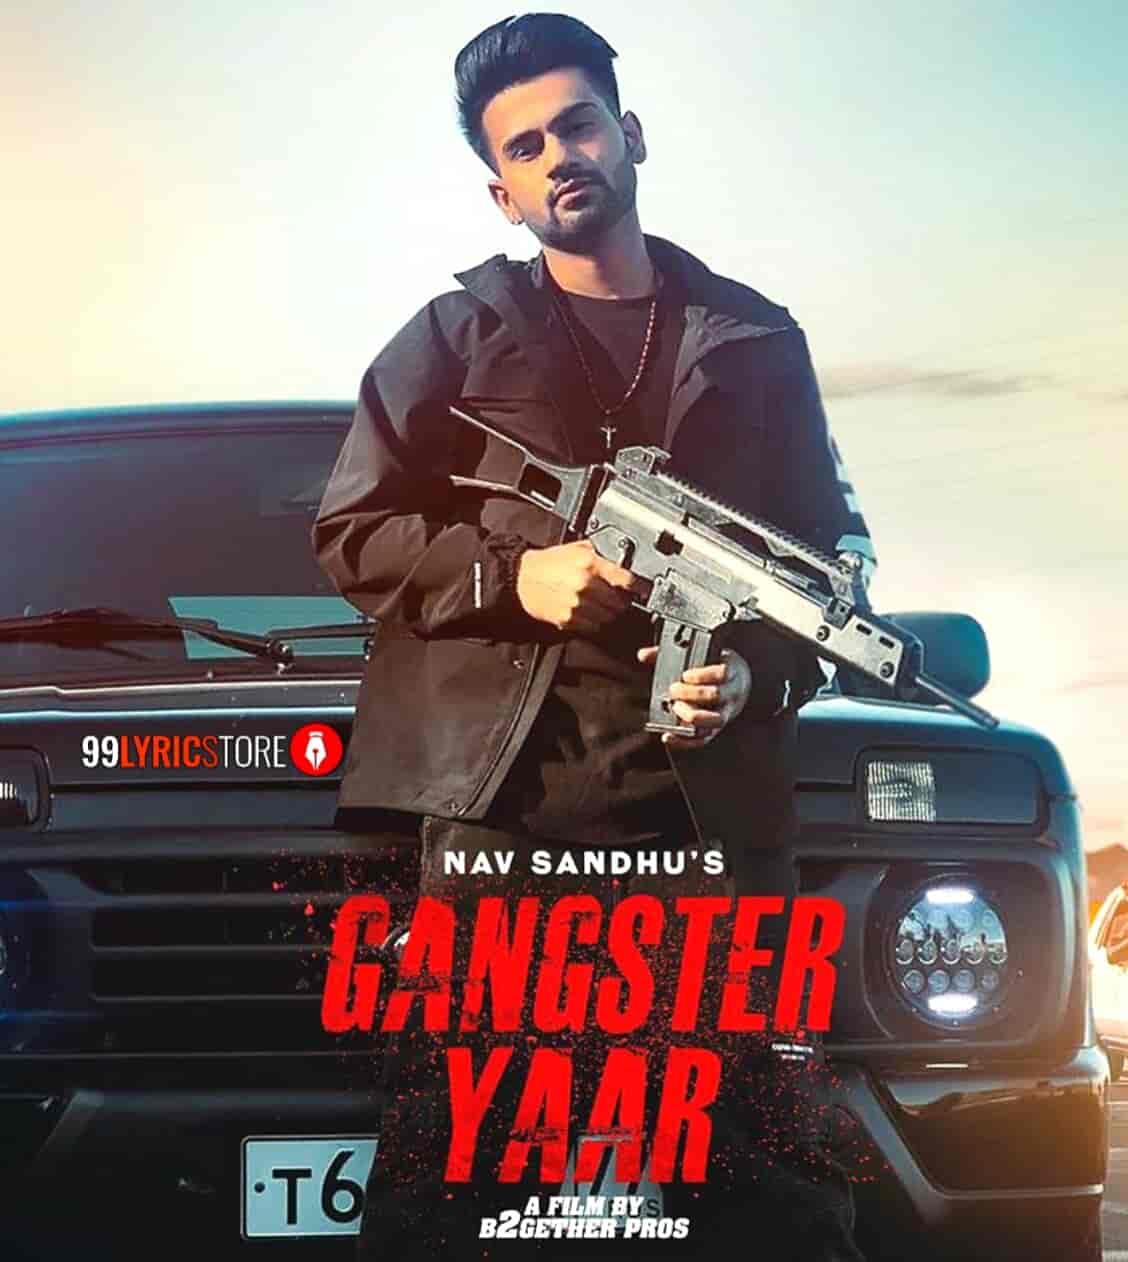 Gangster Yaar Punjabi Song Of Nav Sandhu Images